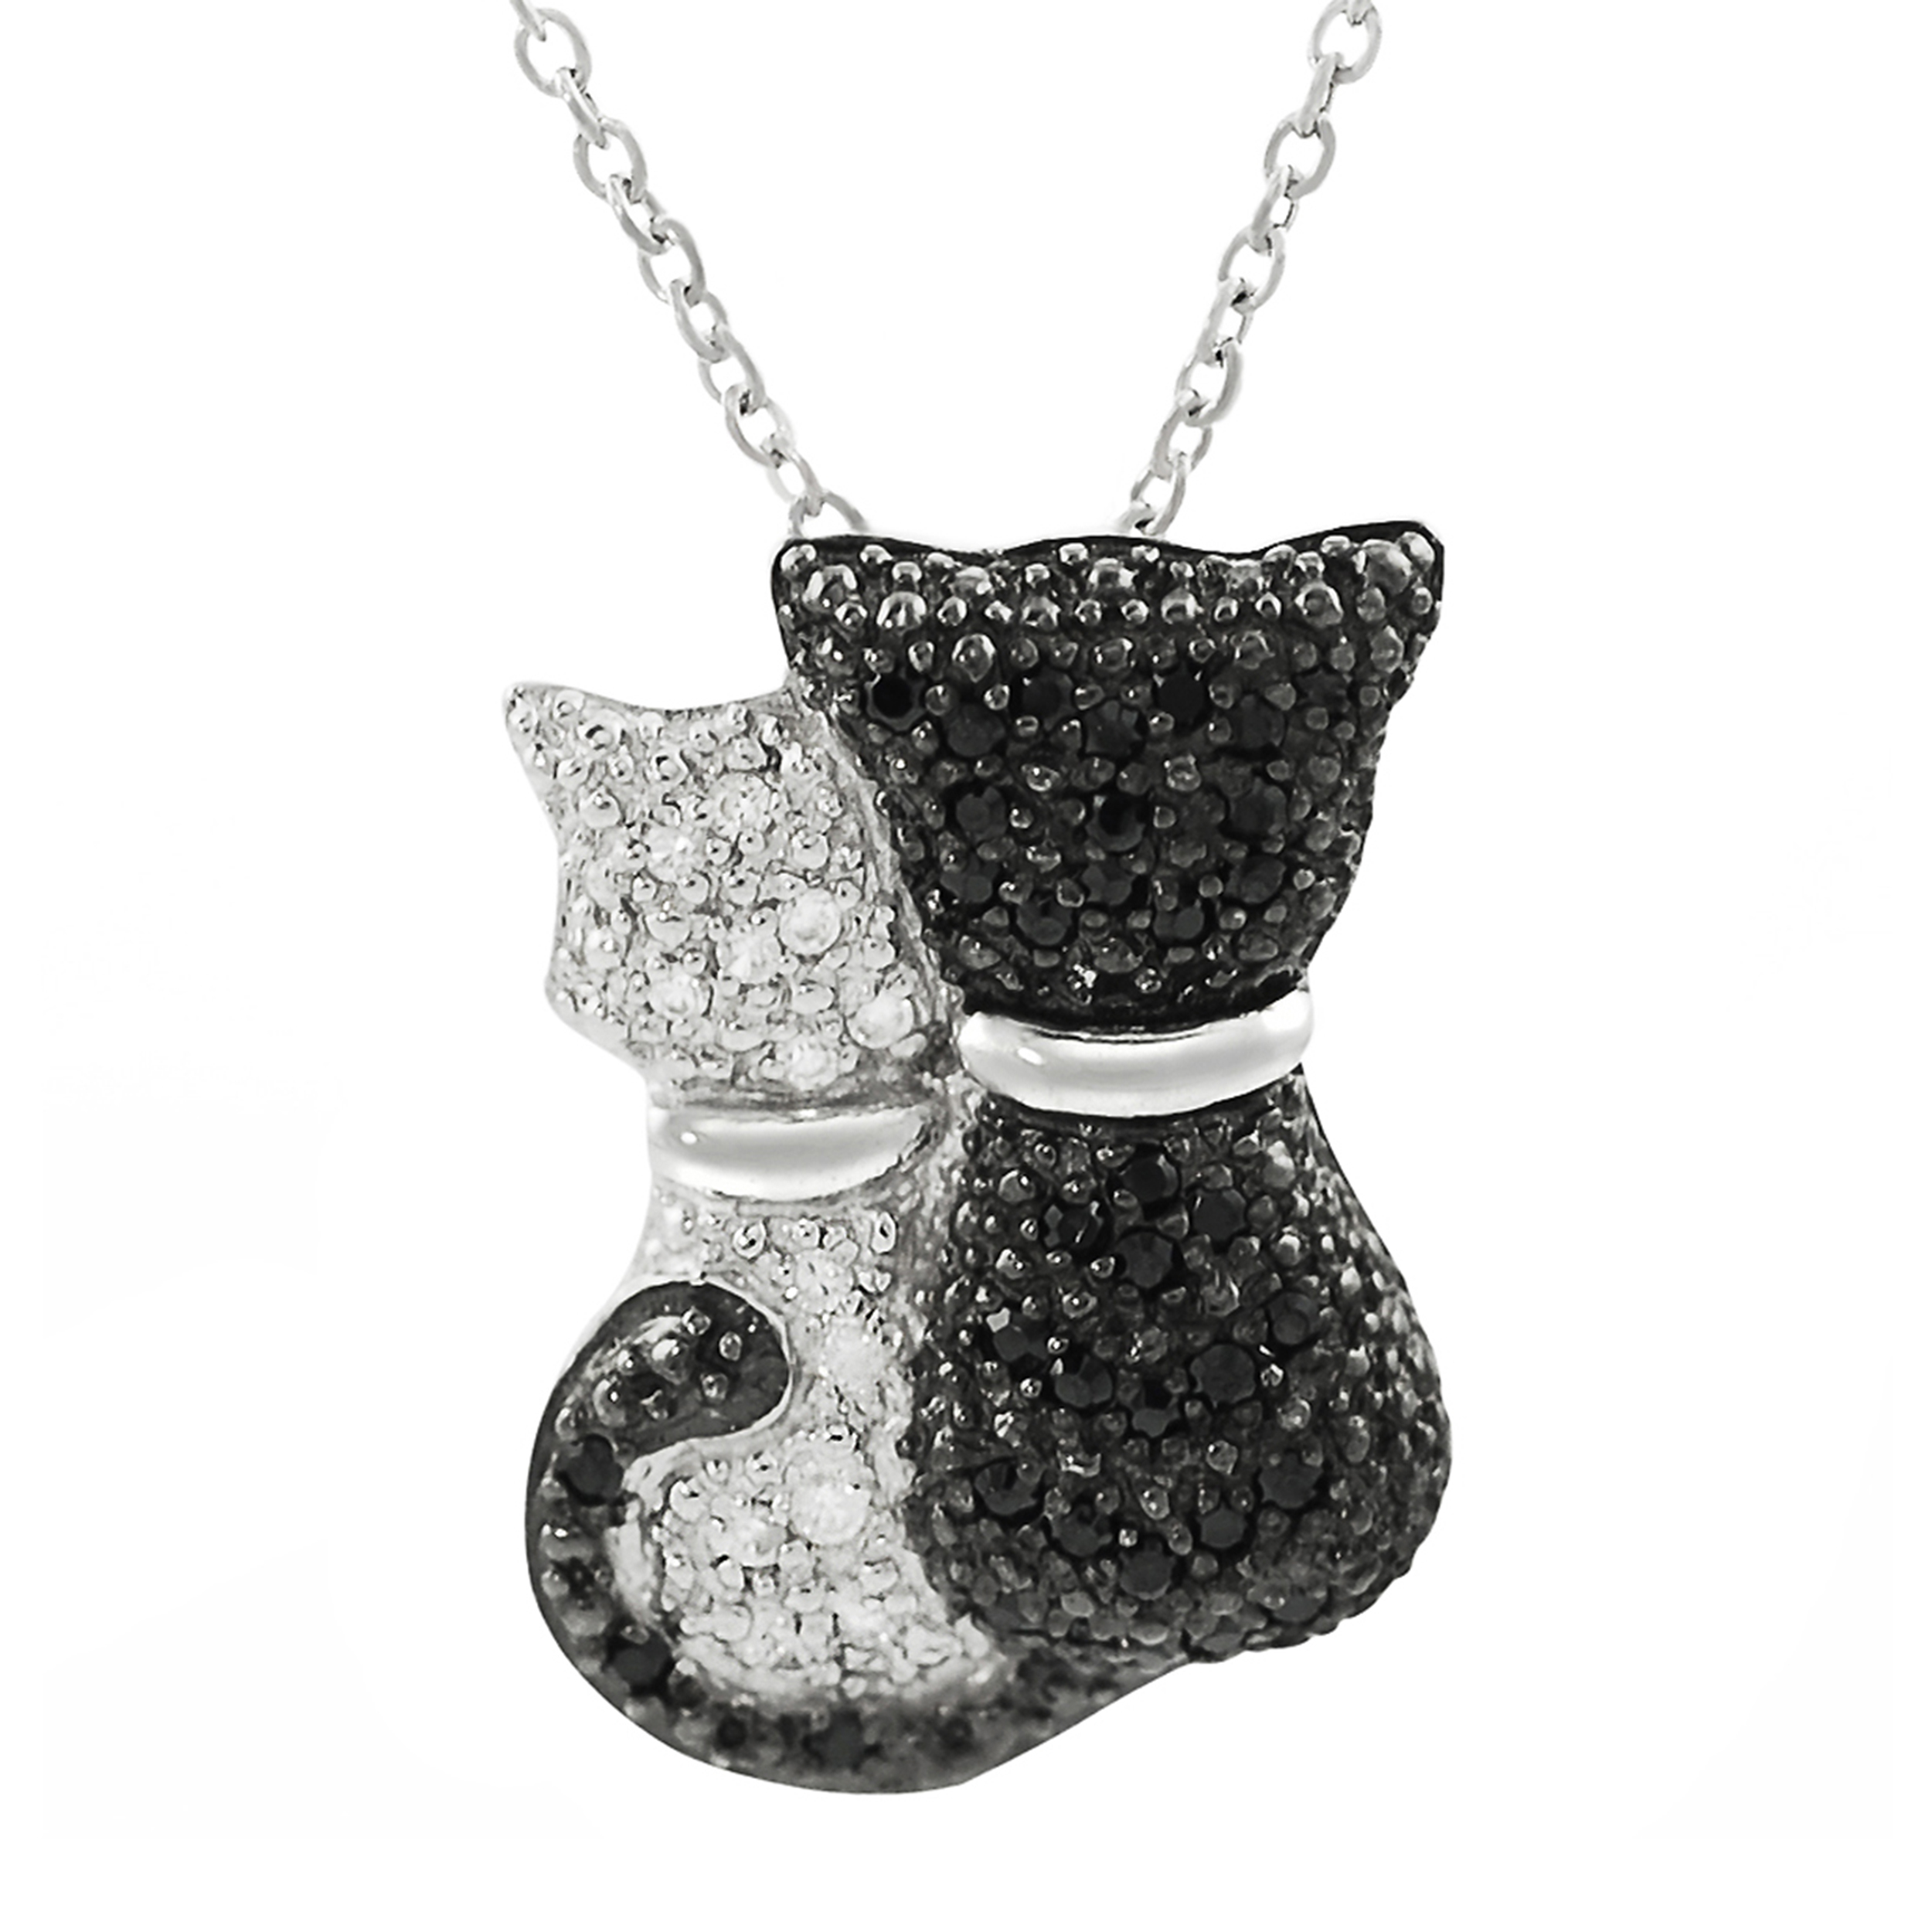 SilverBin Sterling Silver Black and White Cubic Zirconia Cat Necklace at Sears.com